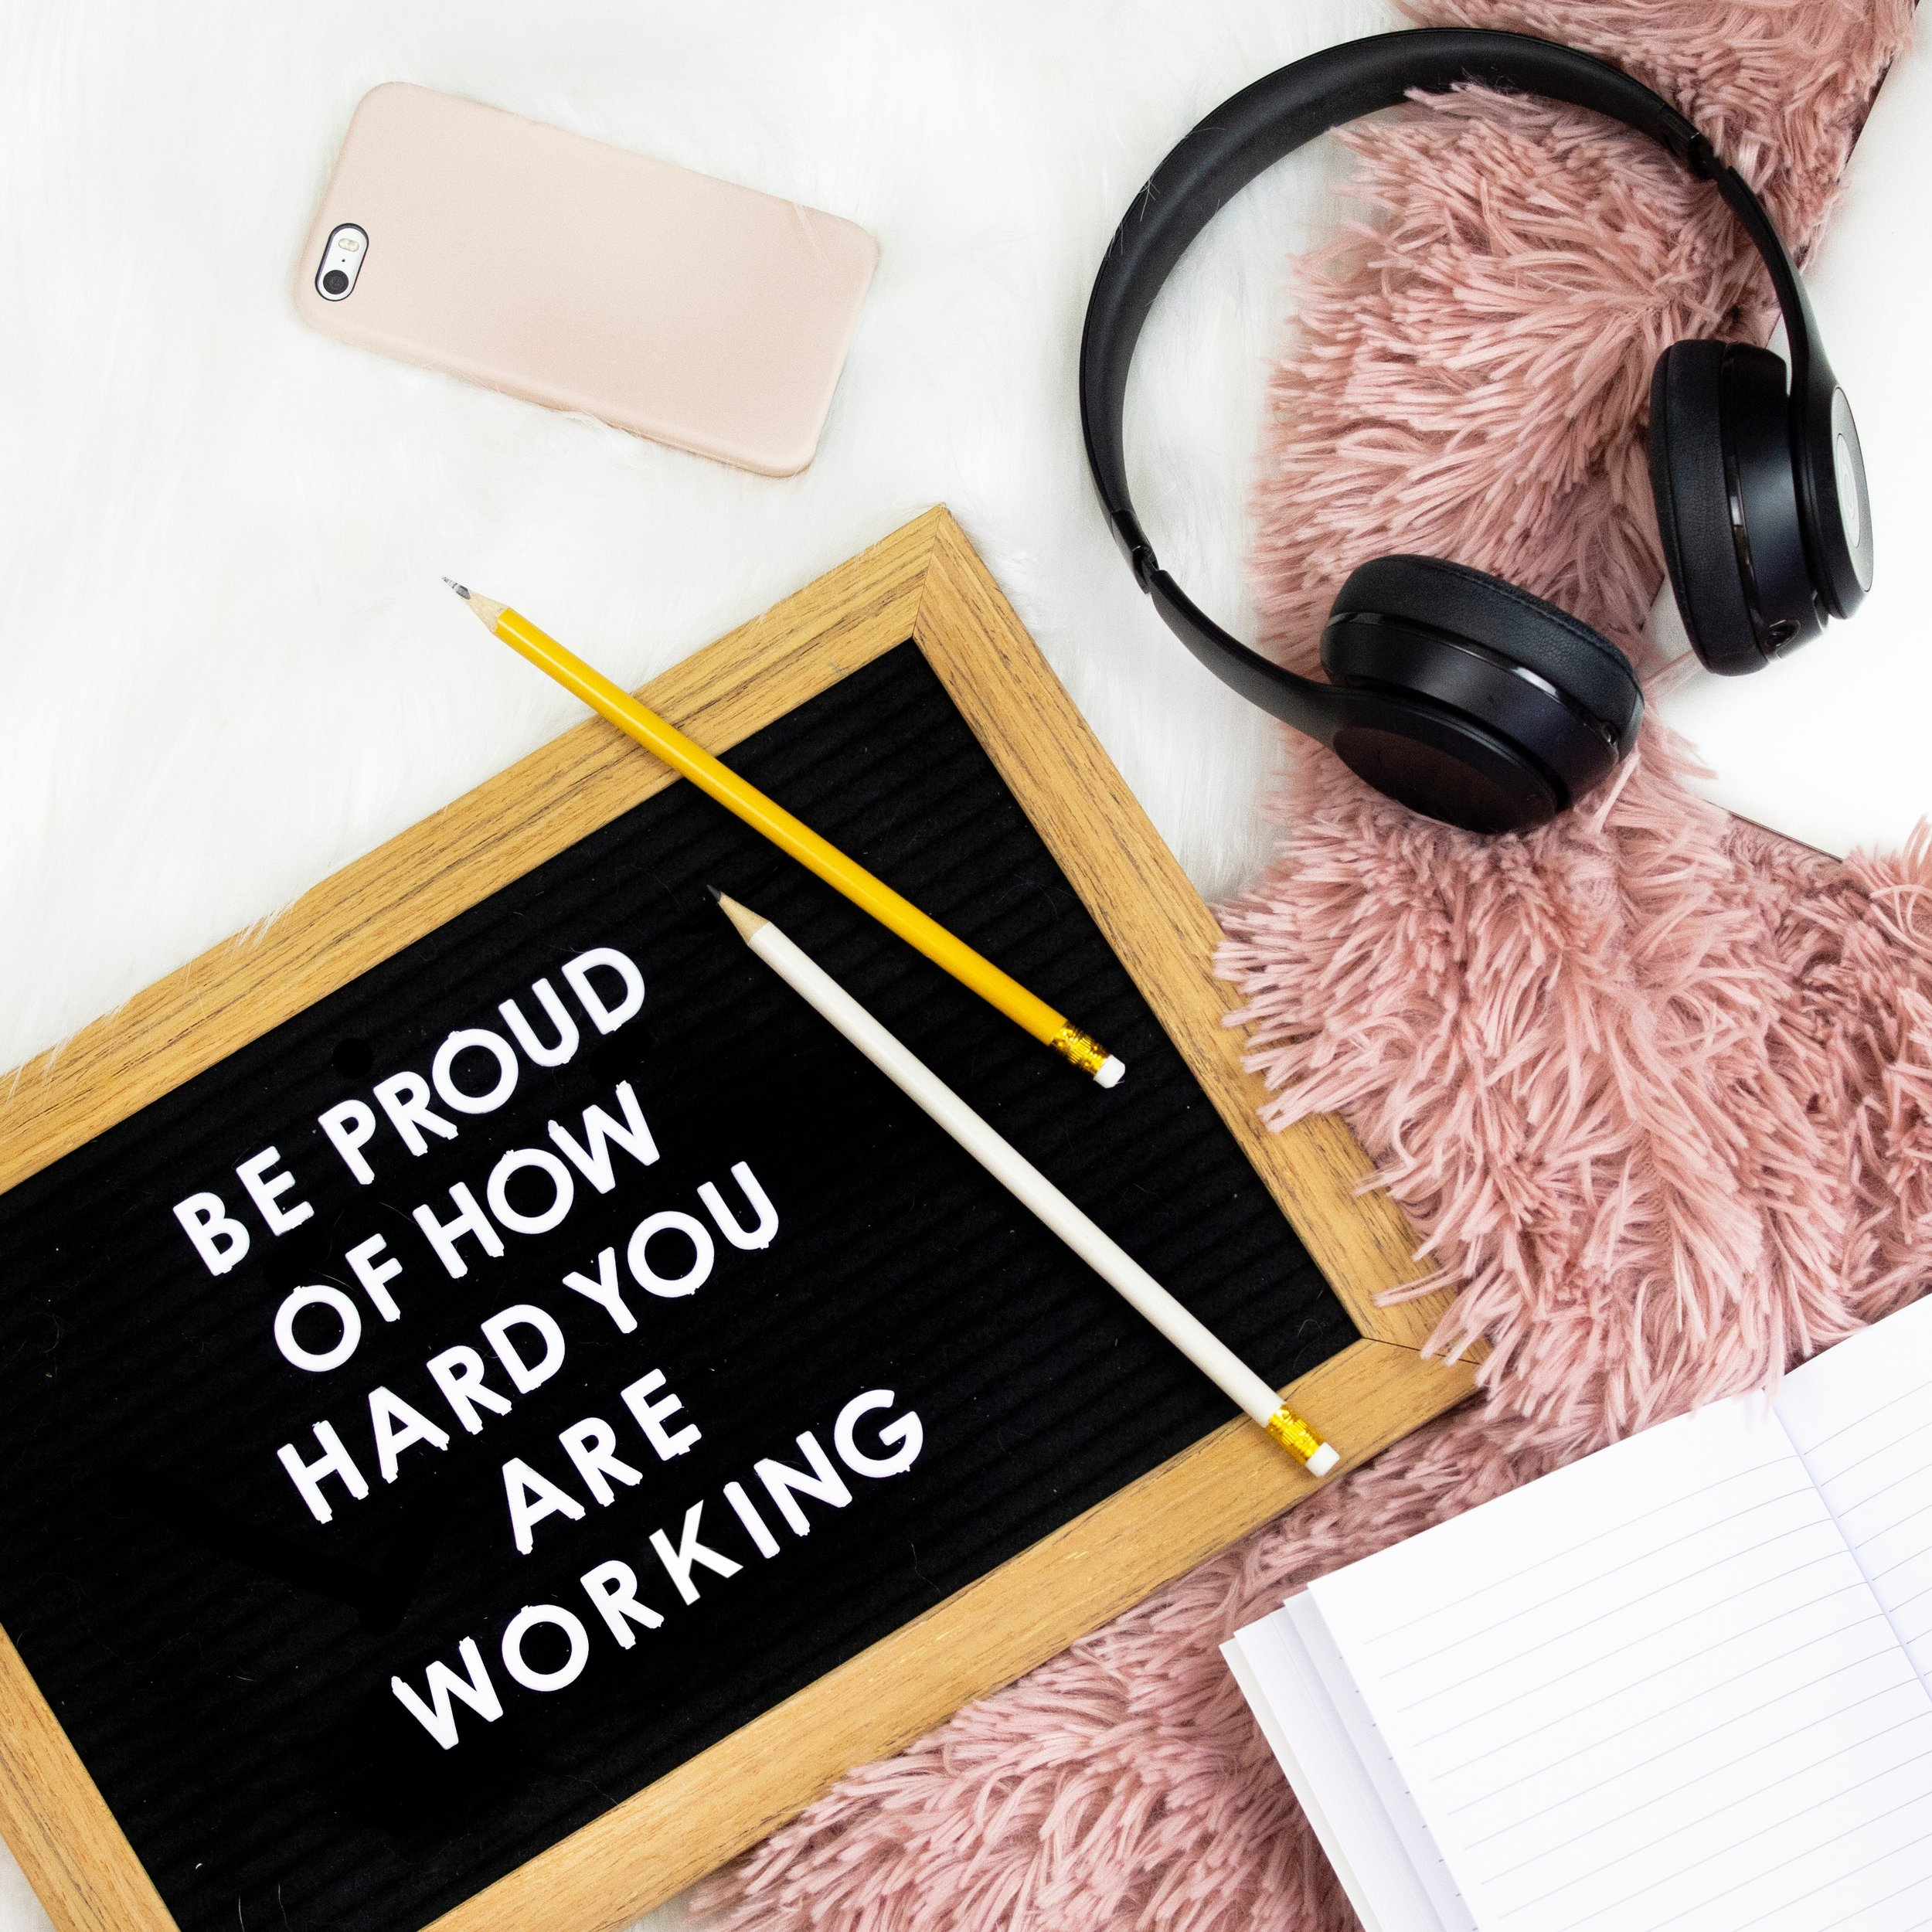 Brand Consultation - 4hr phone or Skype call with the Let's Get Social Leadership TeamExecute brand growth planHow it works:Intention goal setting.Understanding areas of opportunity for growth along energy levels.Step by step content creation planBranding and Marketing skills